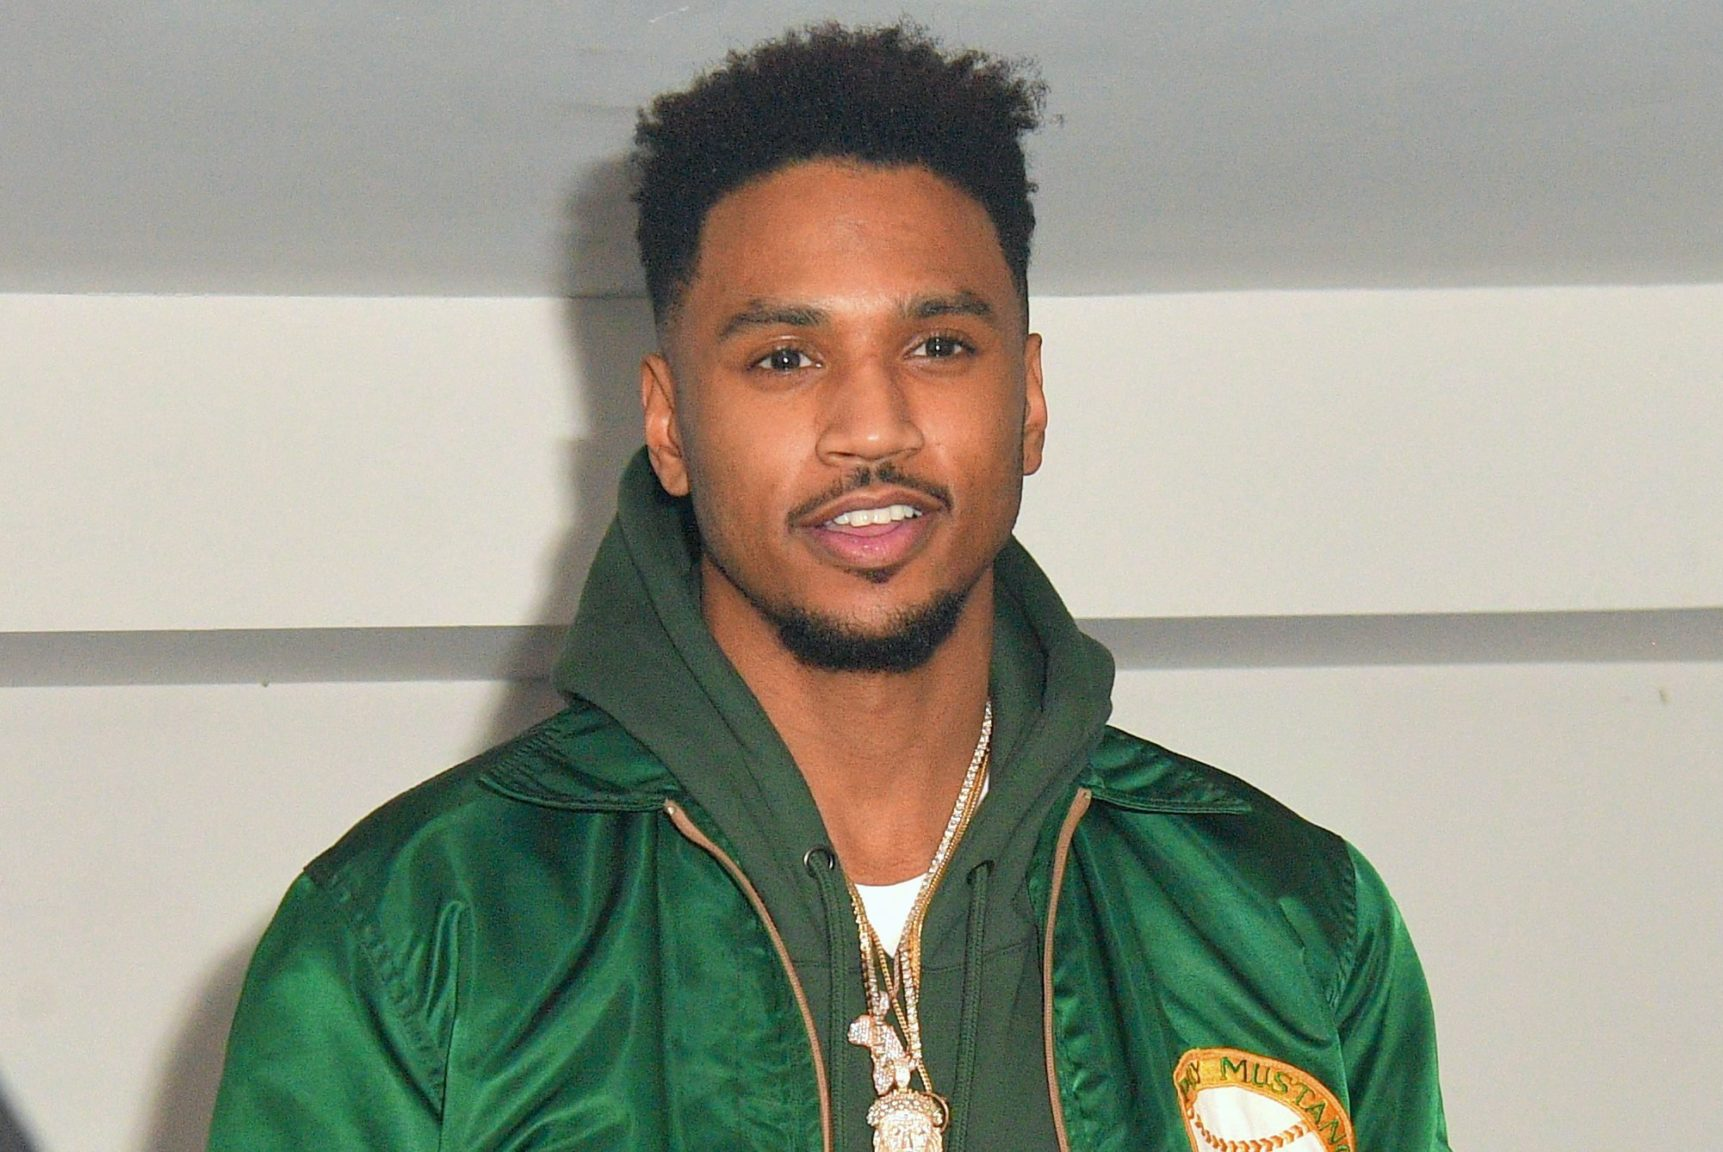 Trey Songz Faces $10 Million Sexual Assault ...How Tall Is Trey Songz